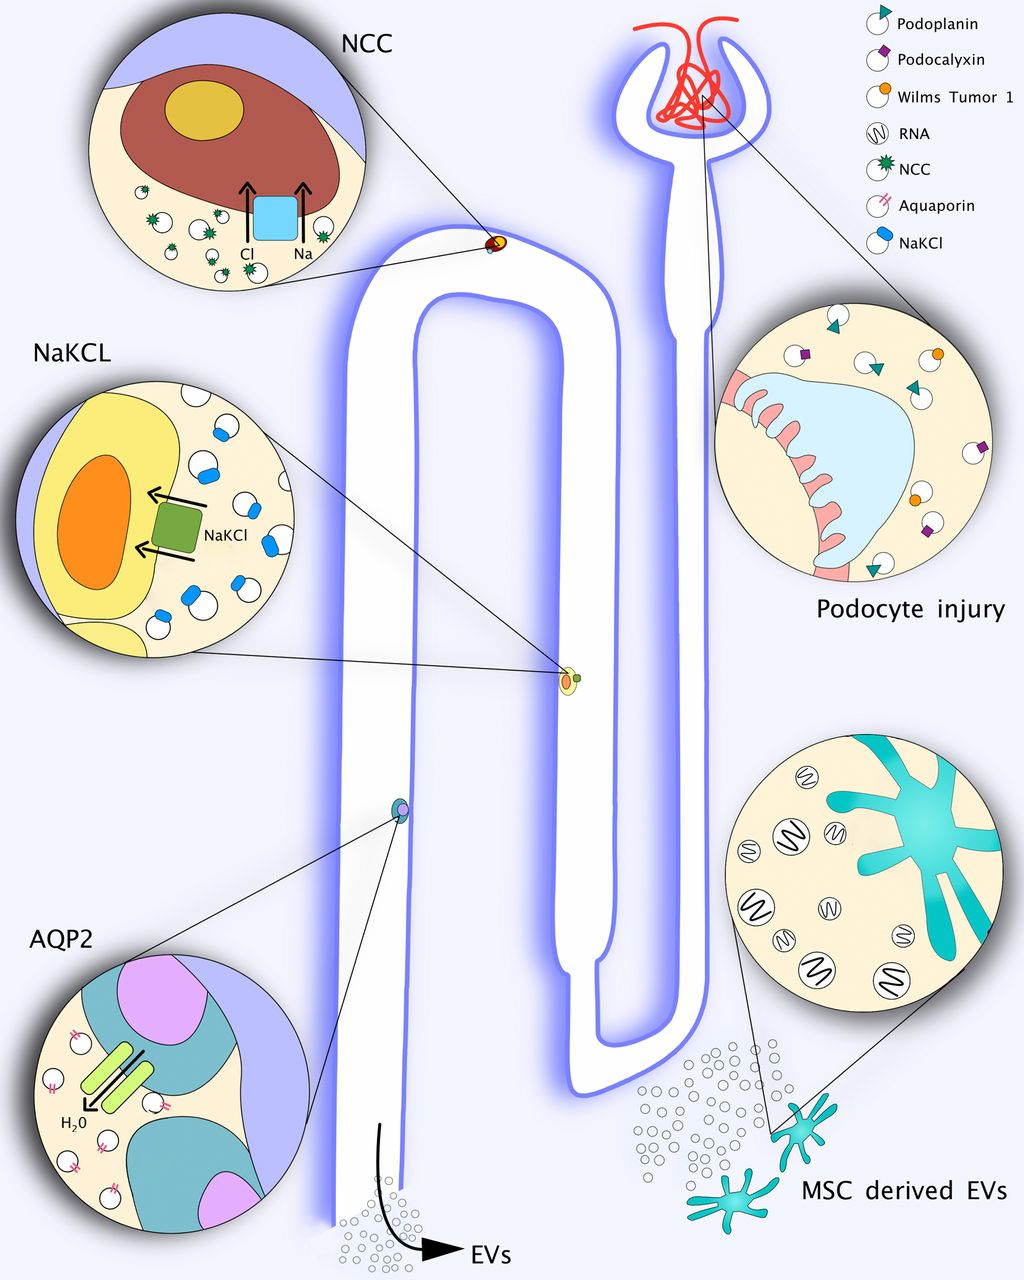 Extracellular Vesicles in Renal Diseases: More than Novel Biomarkers